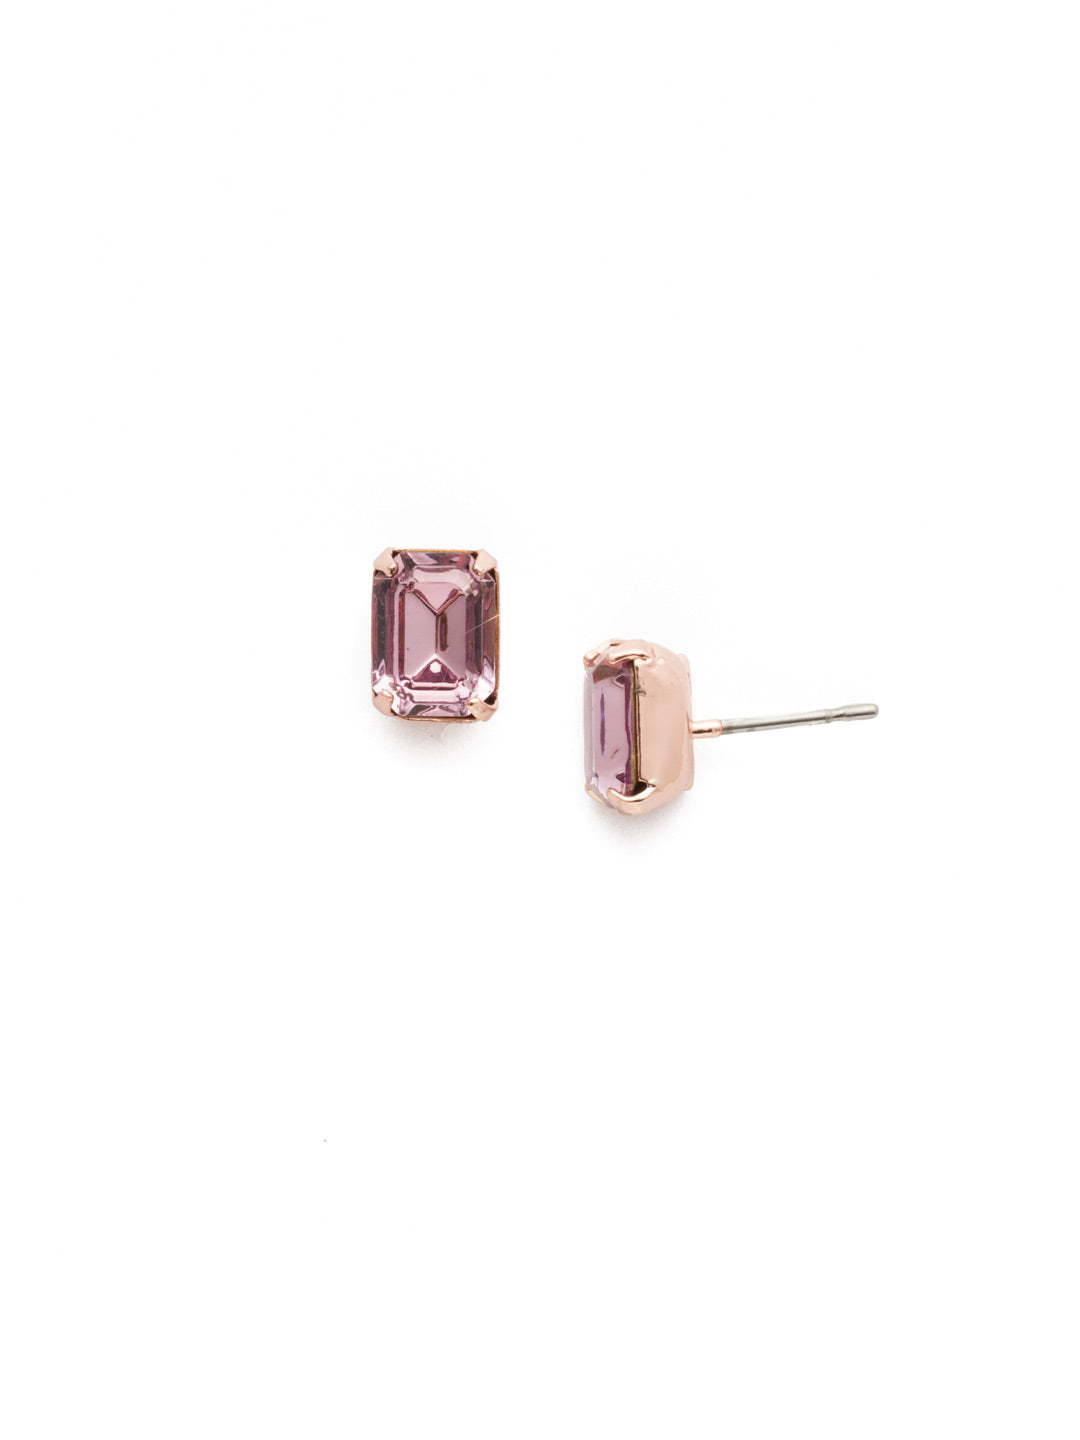 Mini Emerald Cut Stud Earrings - EBY42RGLVP